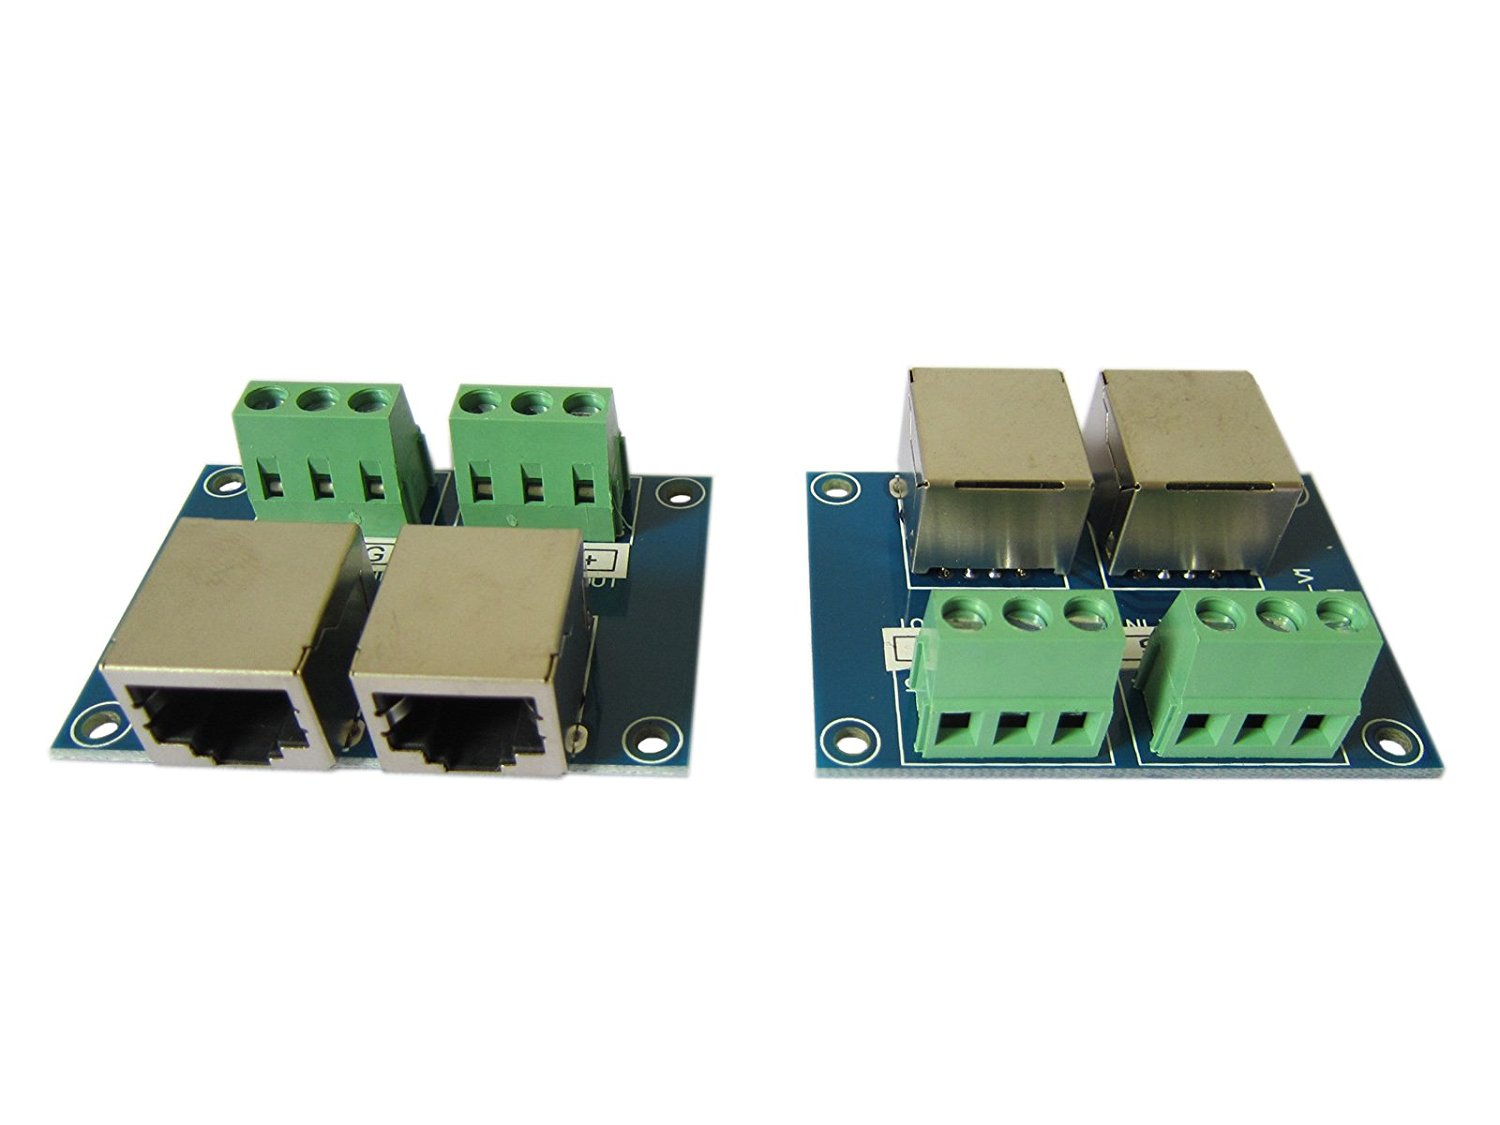 3Pin Terminal Adapter RJ4 3P to RJ45 Converters Plate DMX Controller Decoder (Pack of 2)